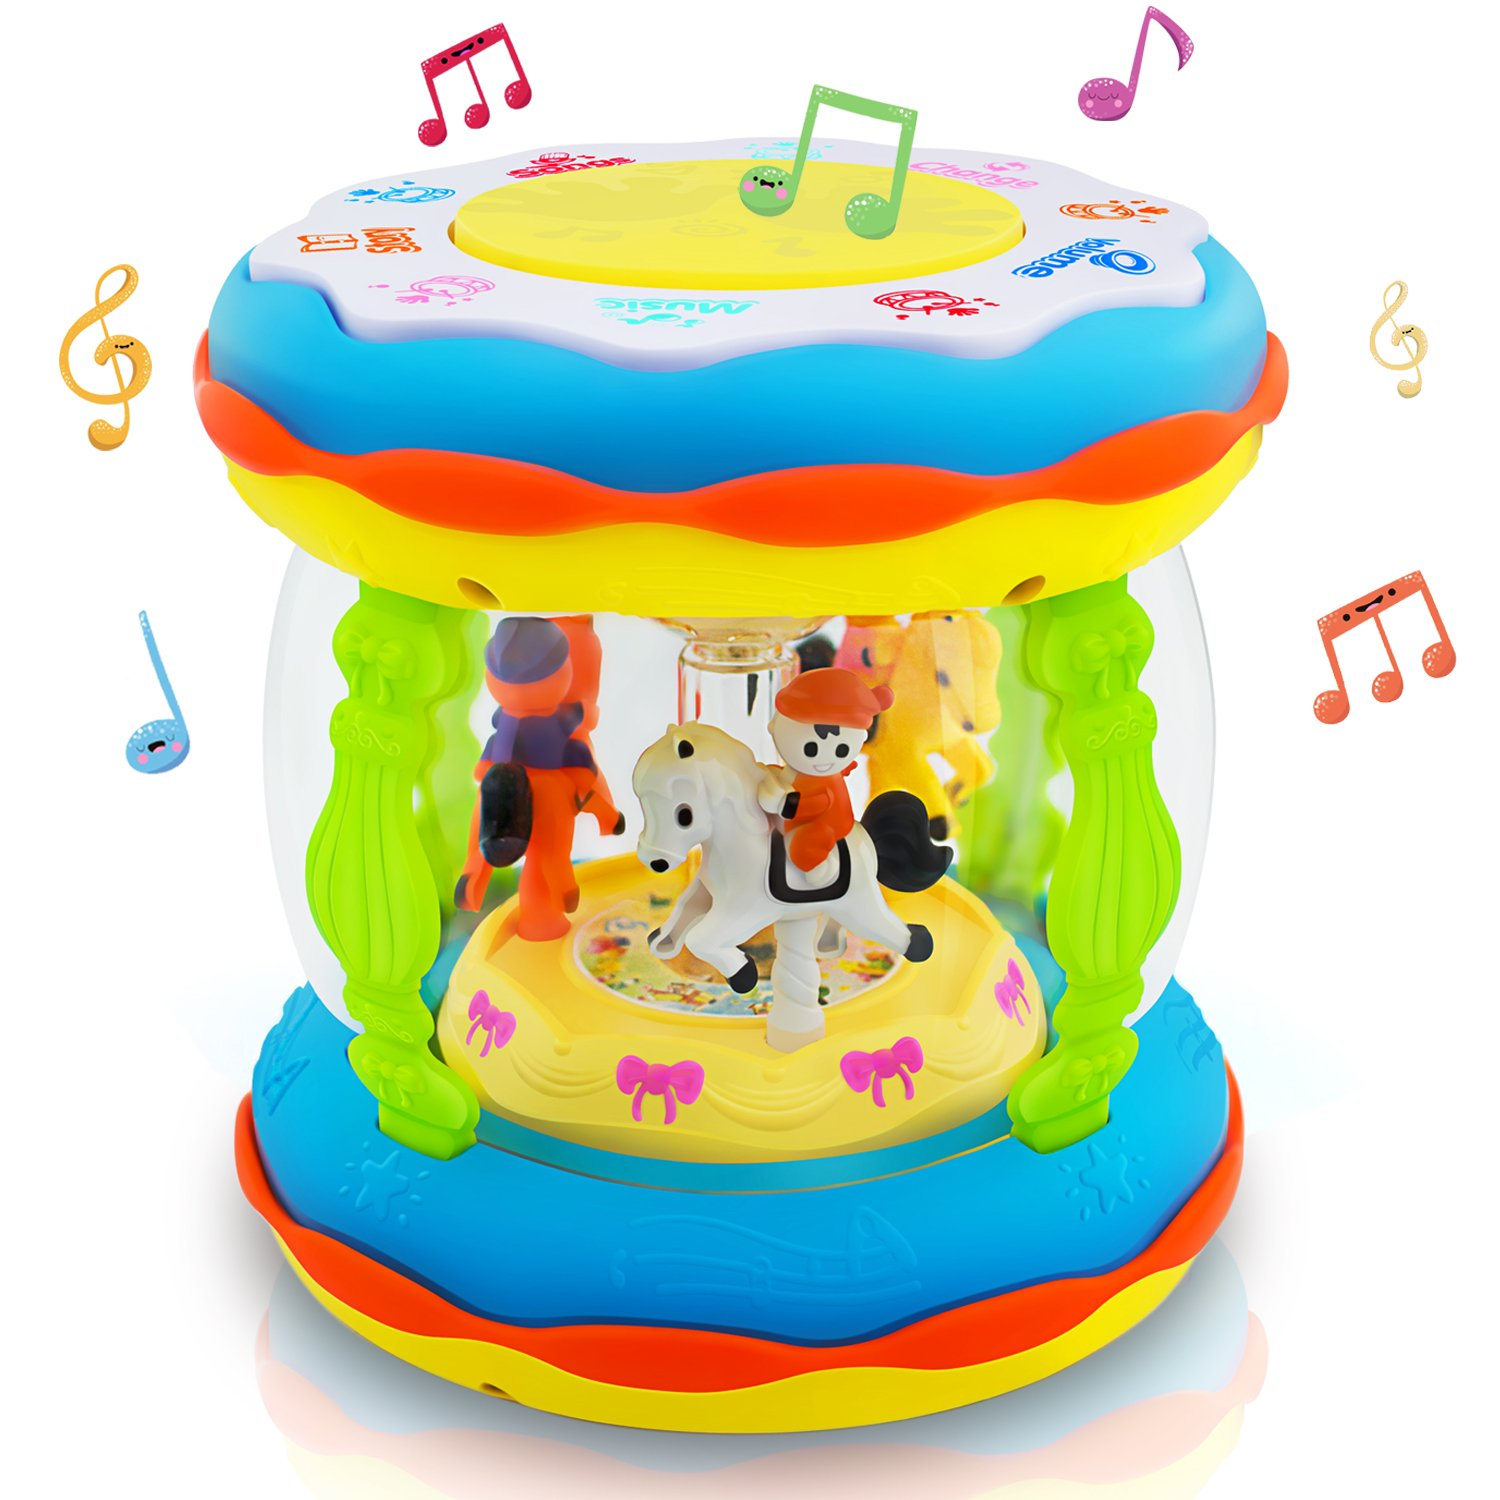 HXSNEW Toddler and Baby Musical Toys, Learning Toys for 1-3 Year Old Boys and Girls